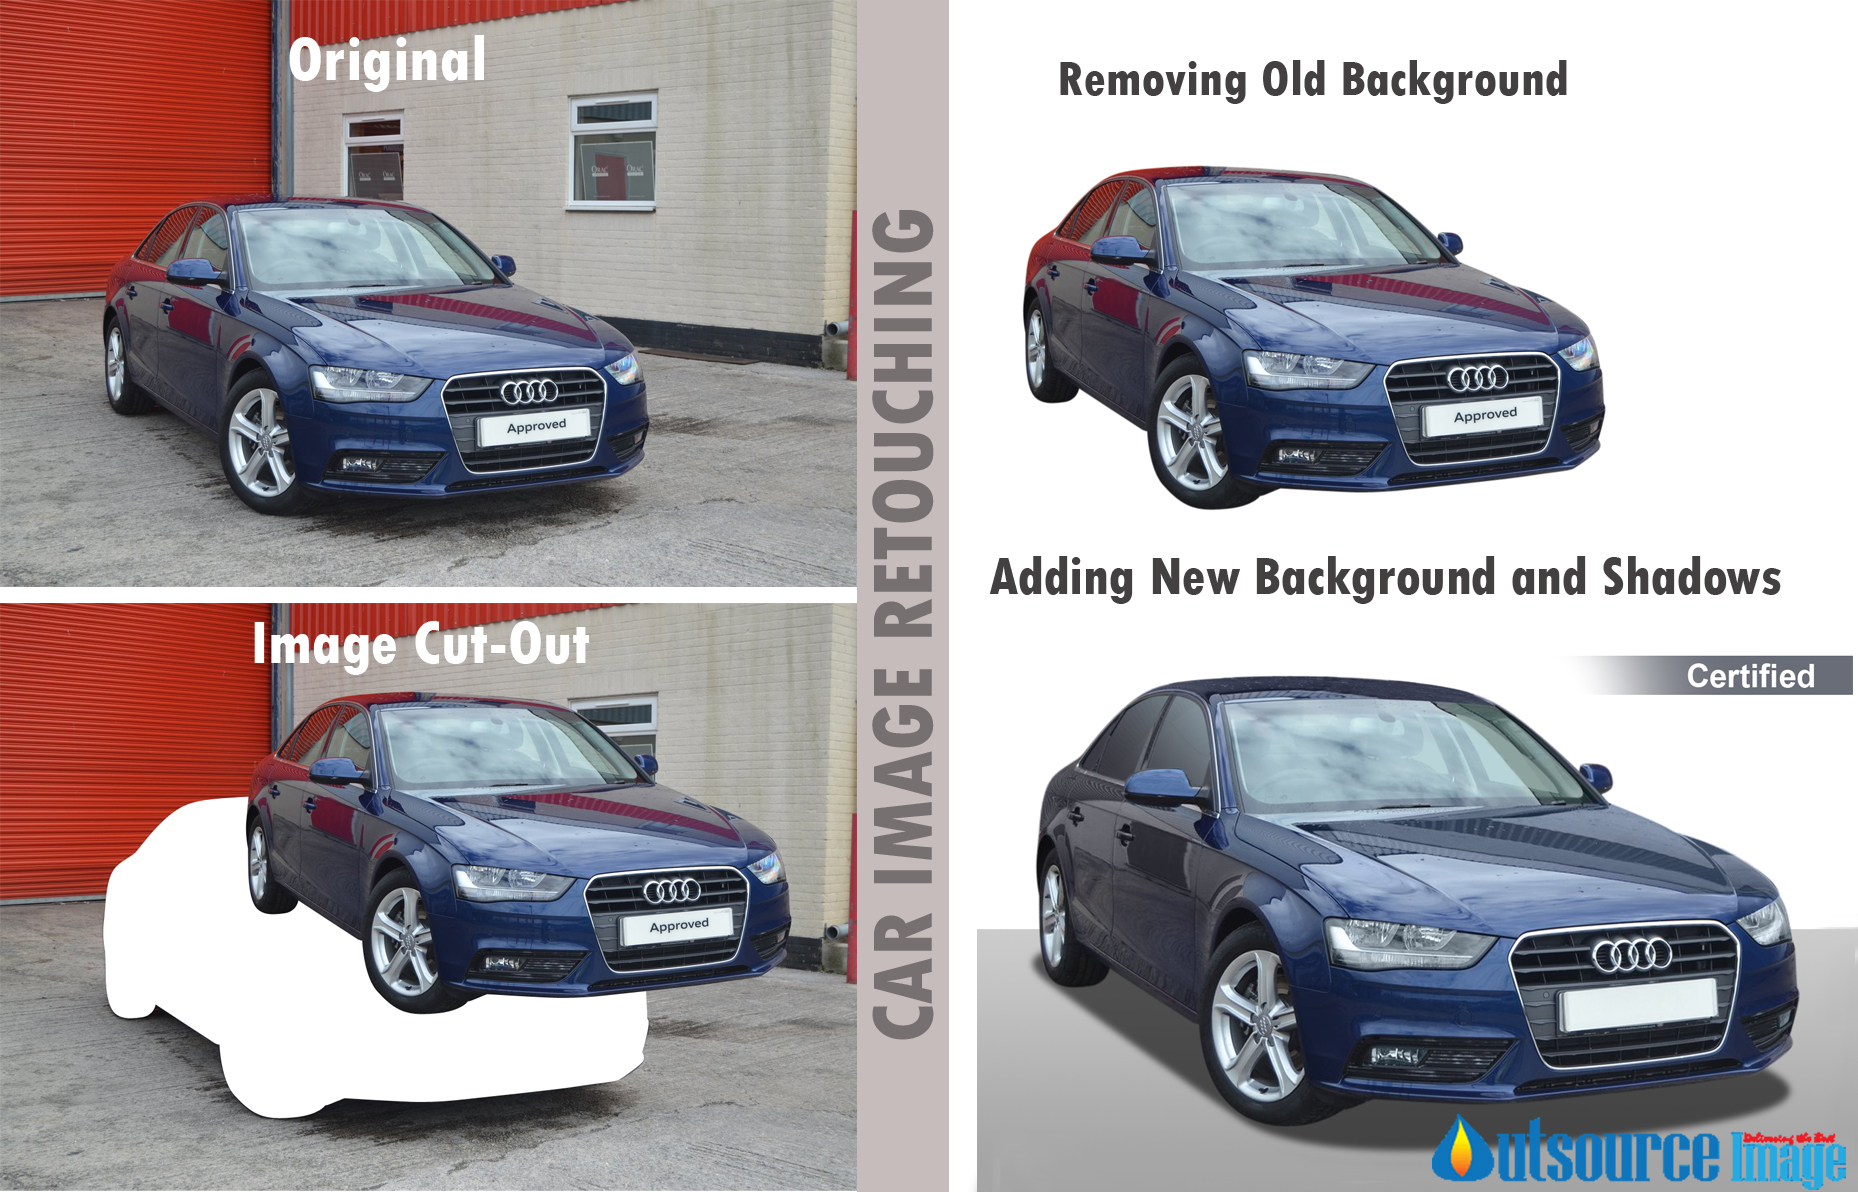 Car Image Editing Services | Car Photo Retouching and Enhancement for Automotive Industry